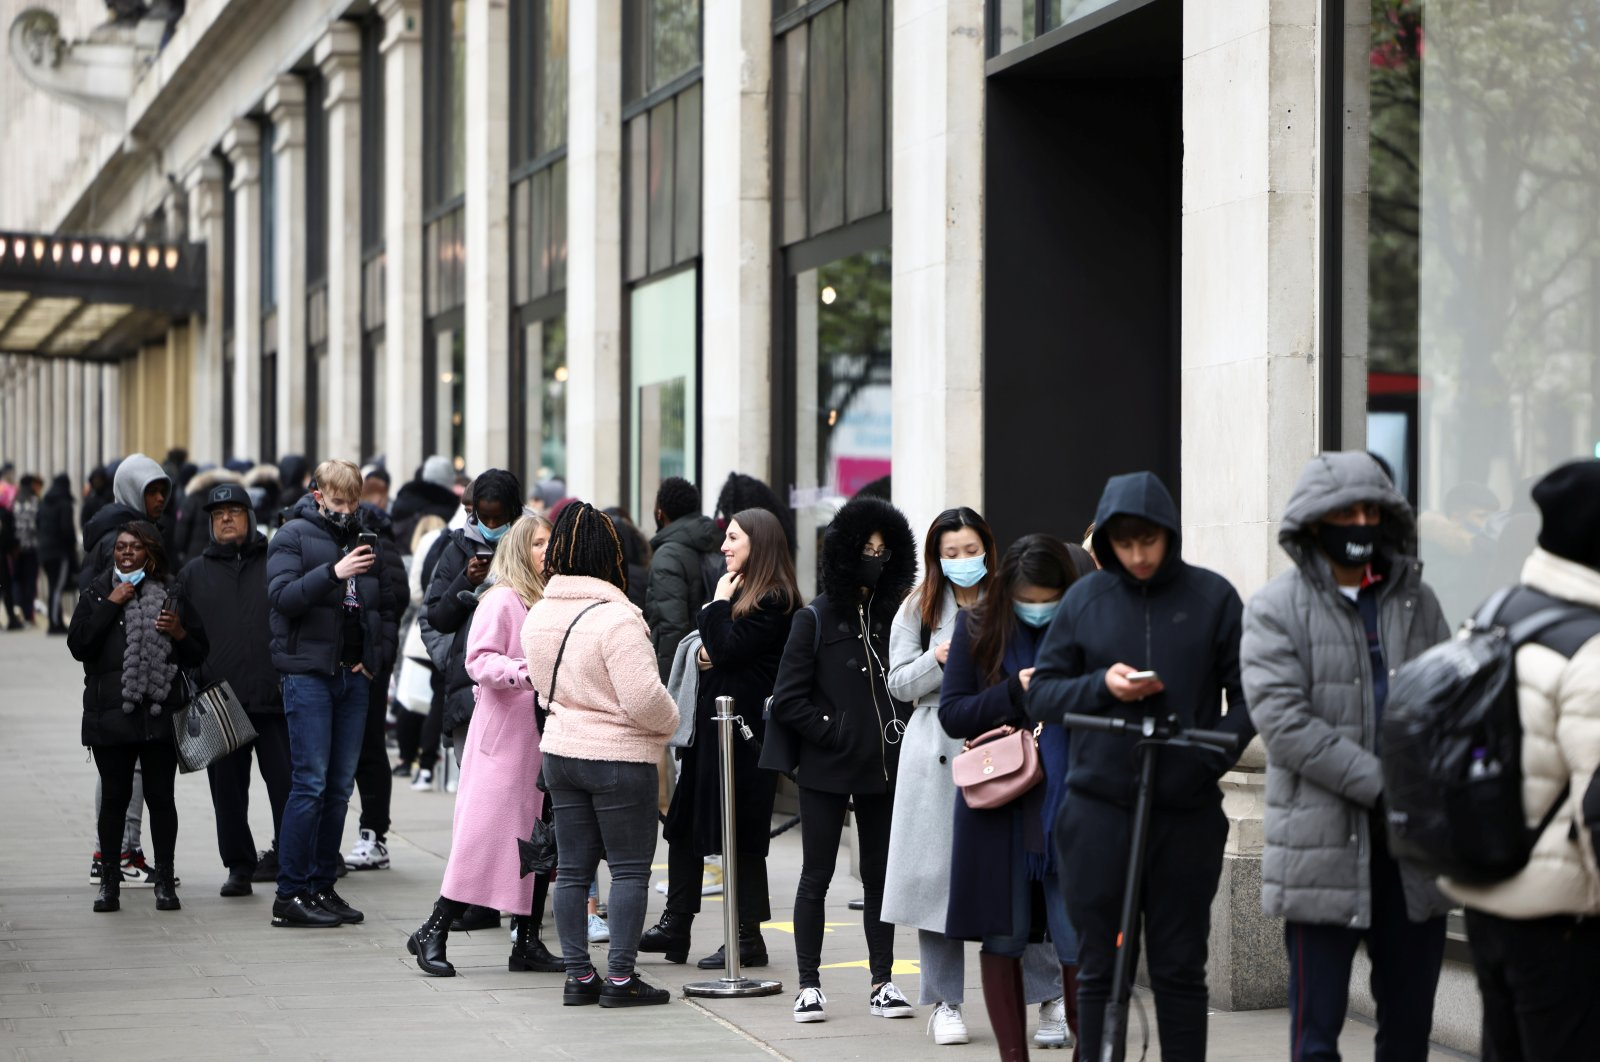 People queue outside a shop on Oxford street, as COVID-19 restrictions ease, in London, Britain, April 12, 2021. (Reuters Photo)